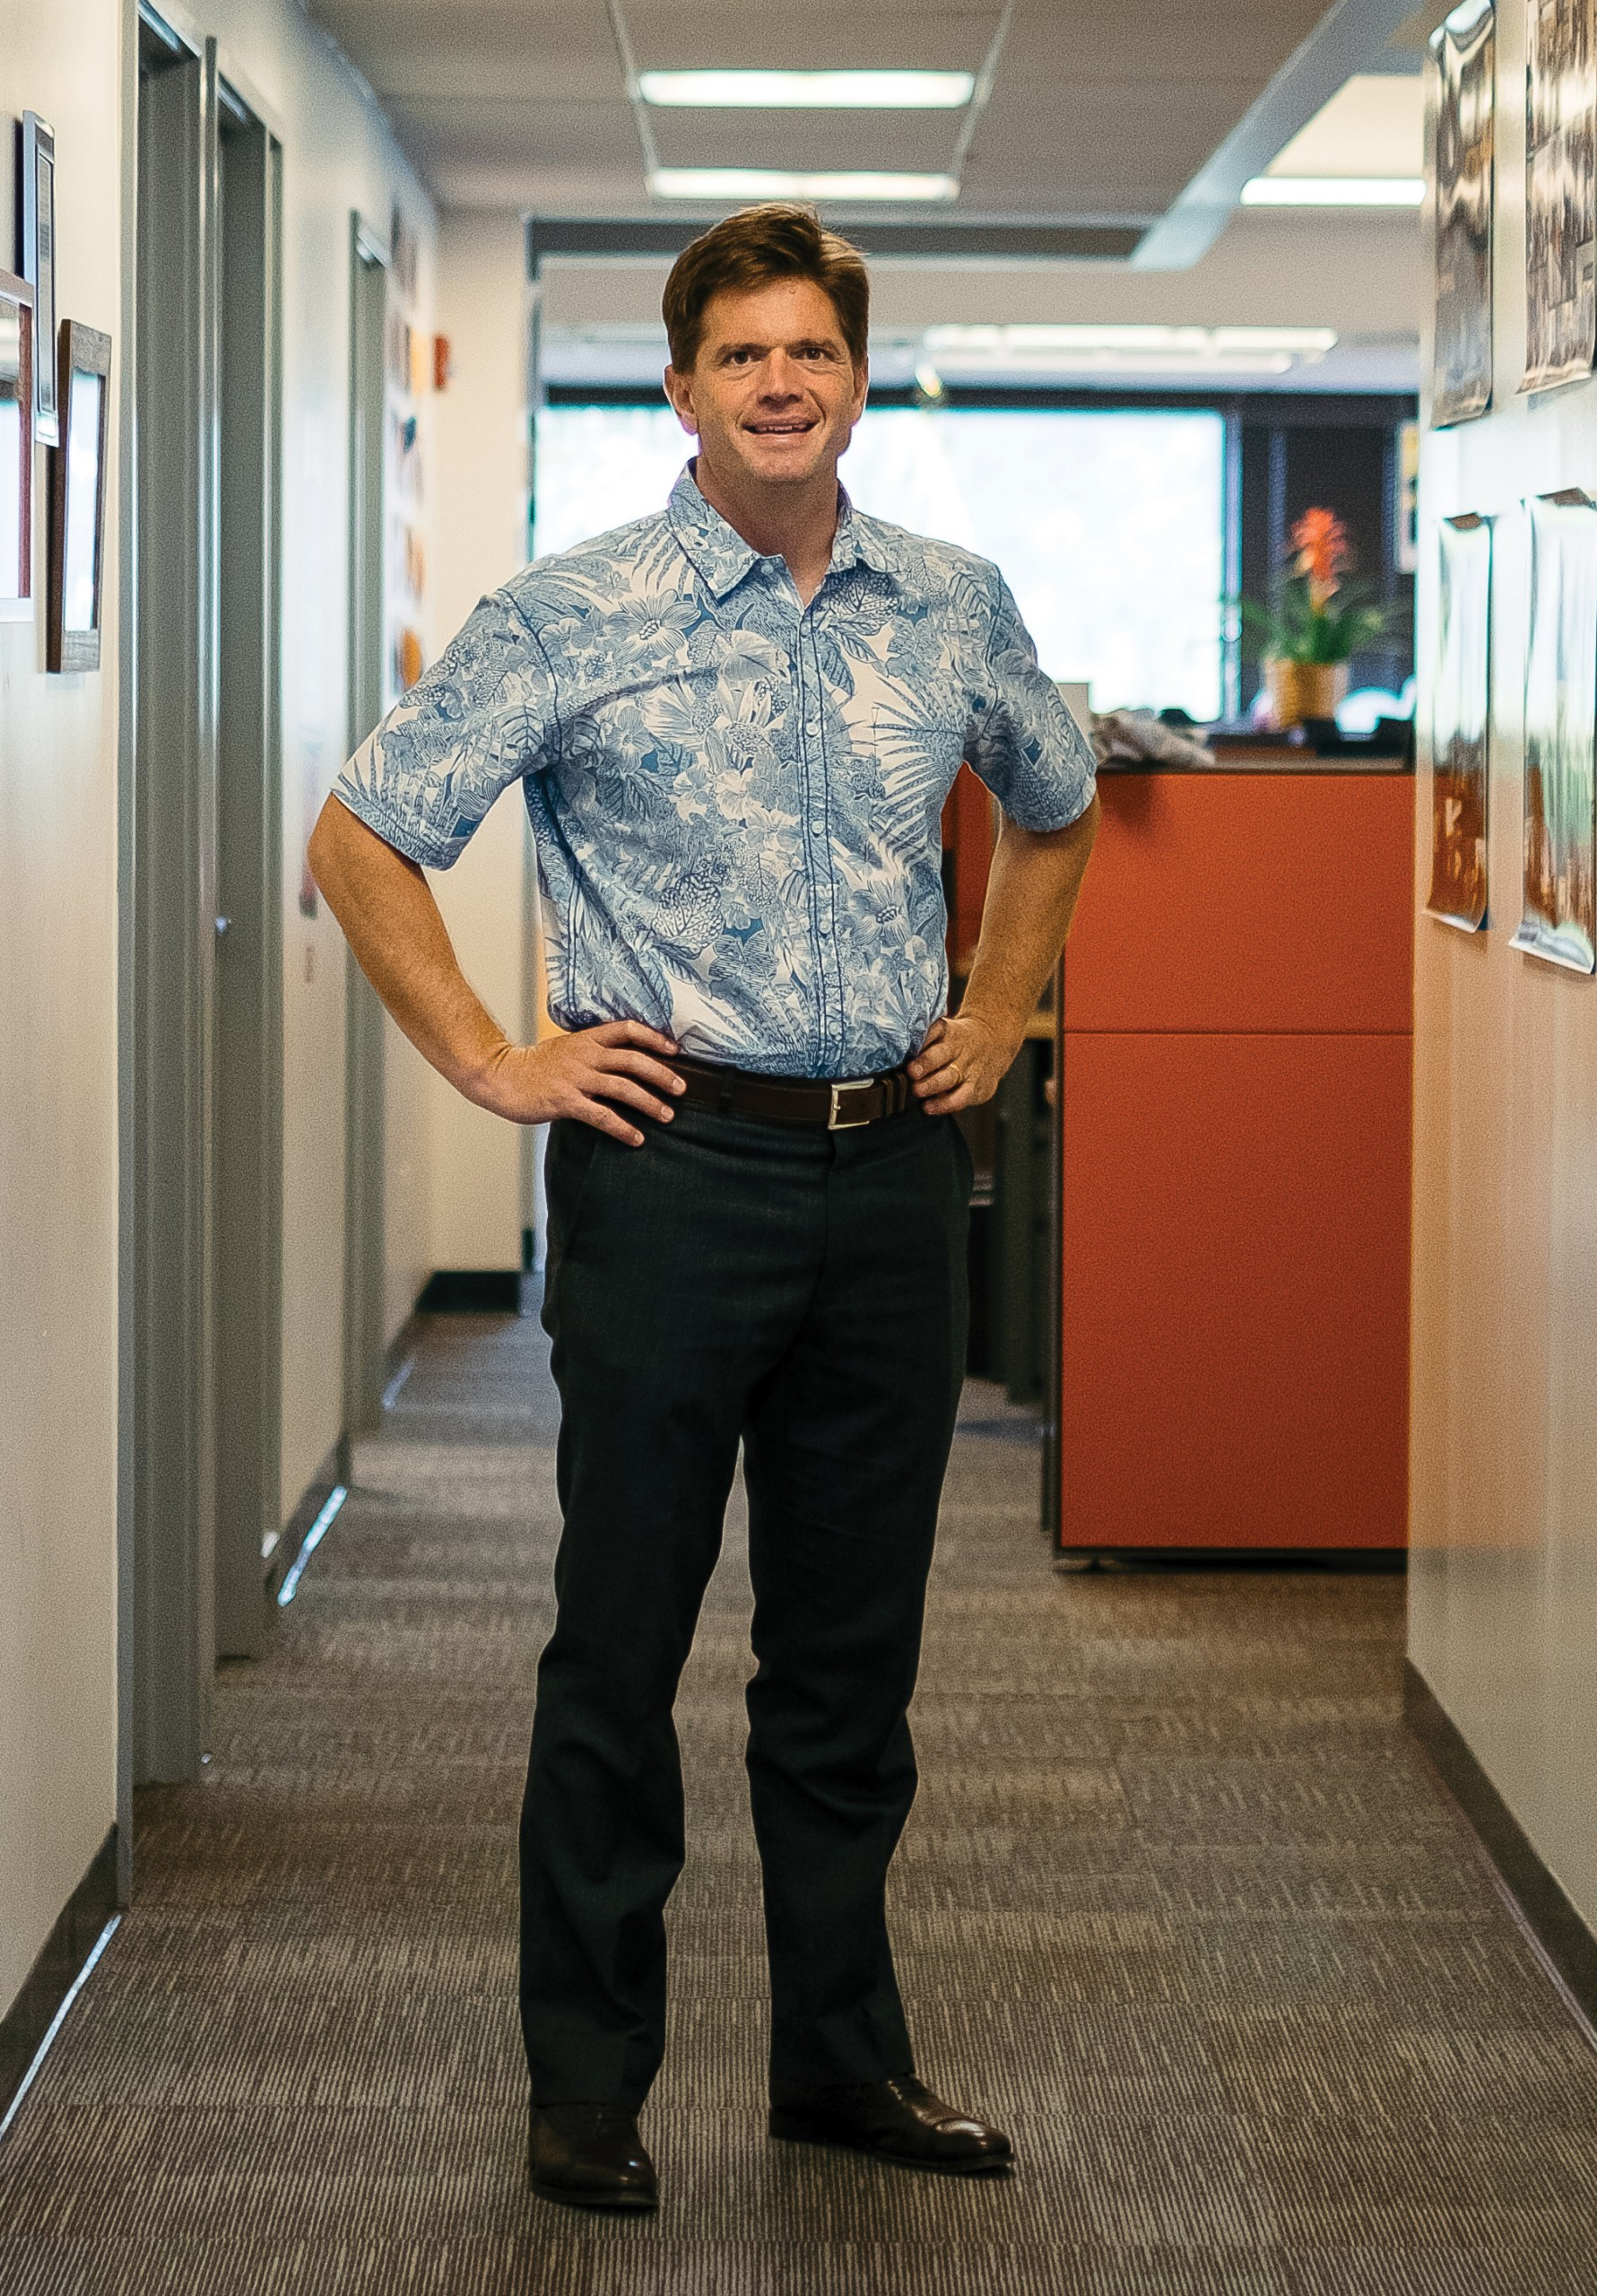 Ben Godsey says the HiHR acquisition helped ProService grow: At the end of 2016, it handled about $1.2 billion in annual payroll for its clients; he expects that to grow 15 percent this year.